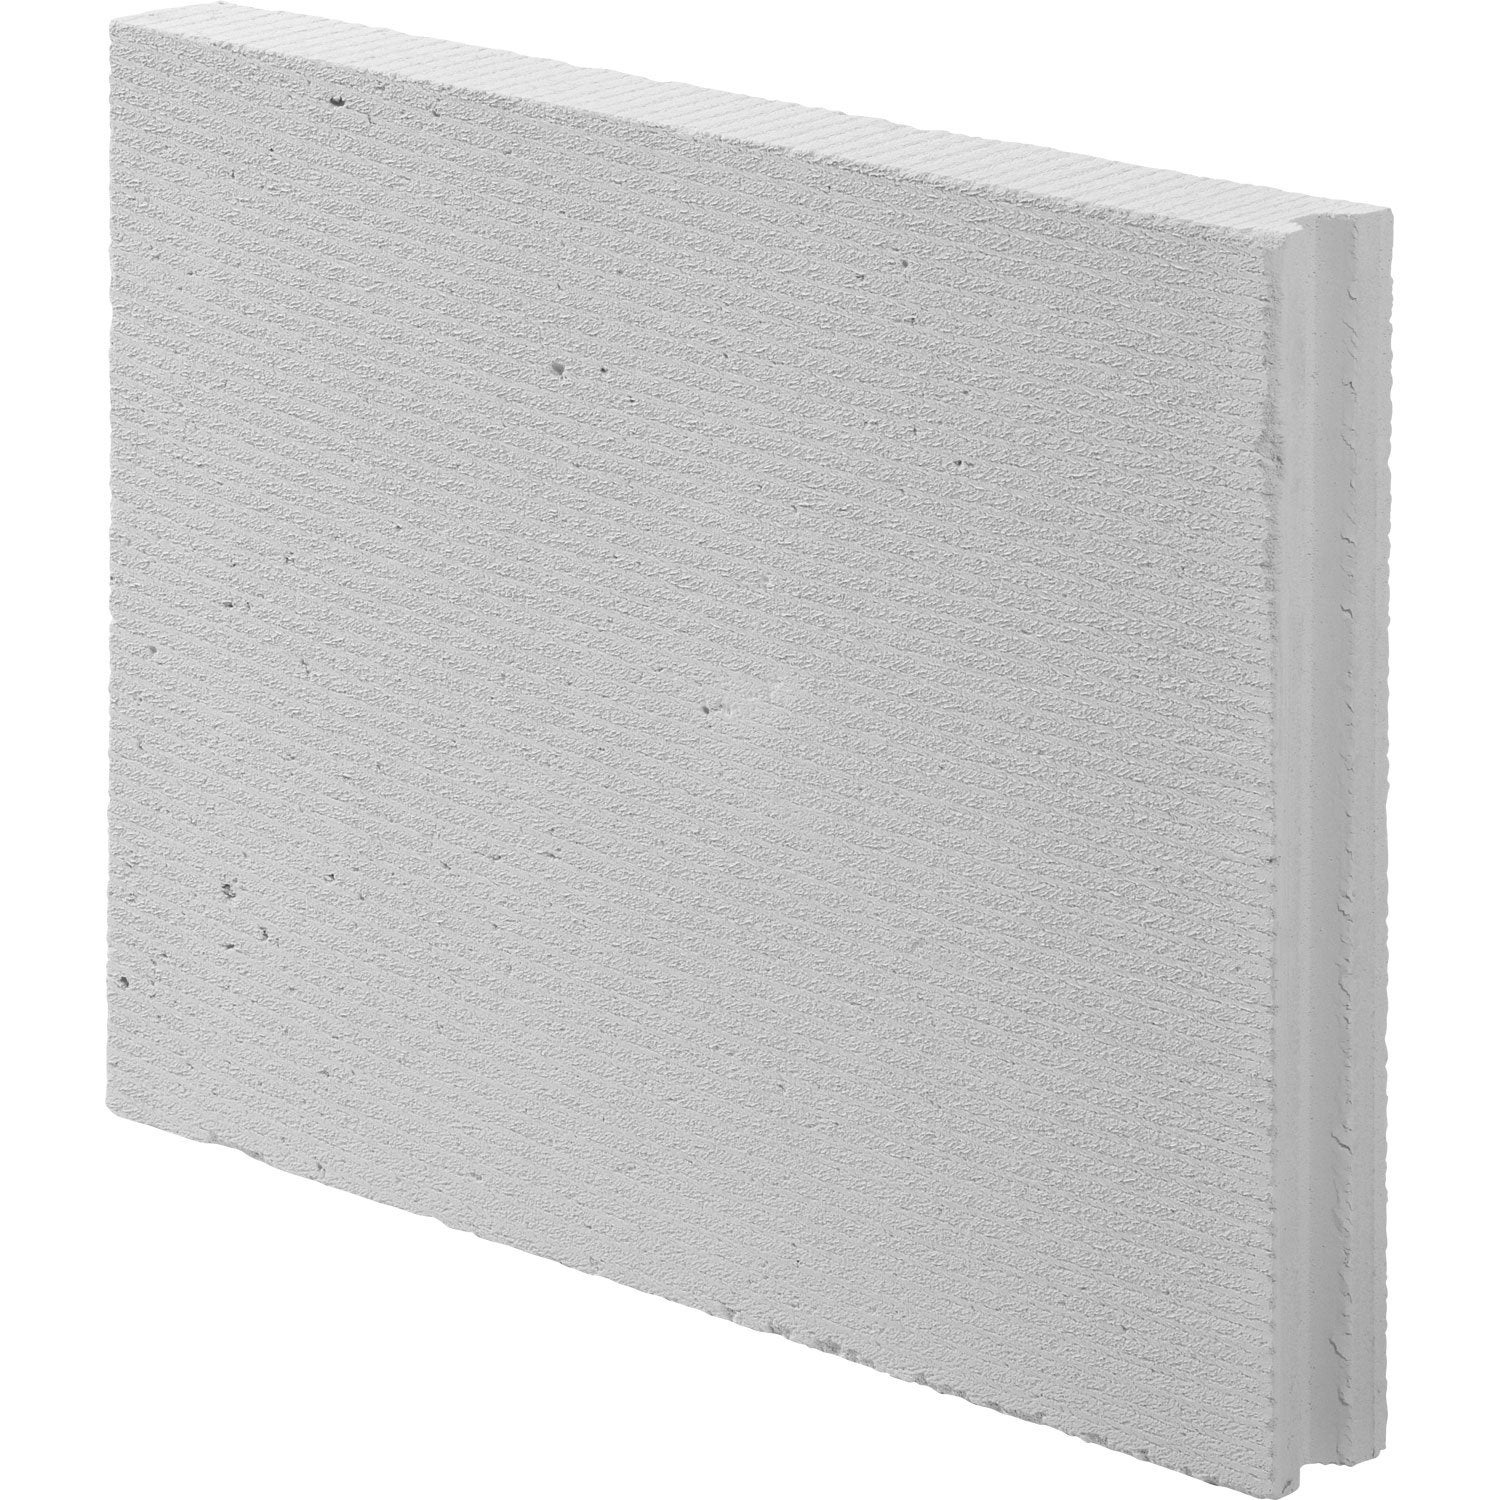 Carreau de b ton cellulaire x x ep 7 cm cellumat - Beton decoratif leroy merlin ...